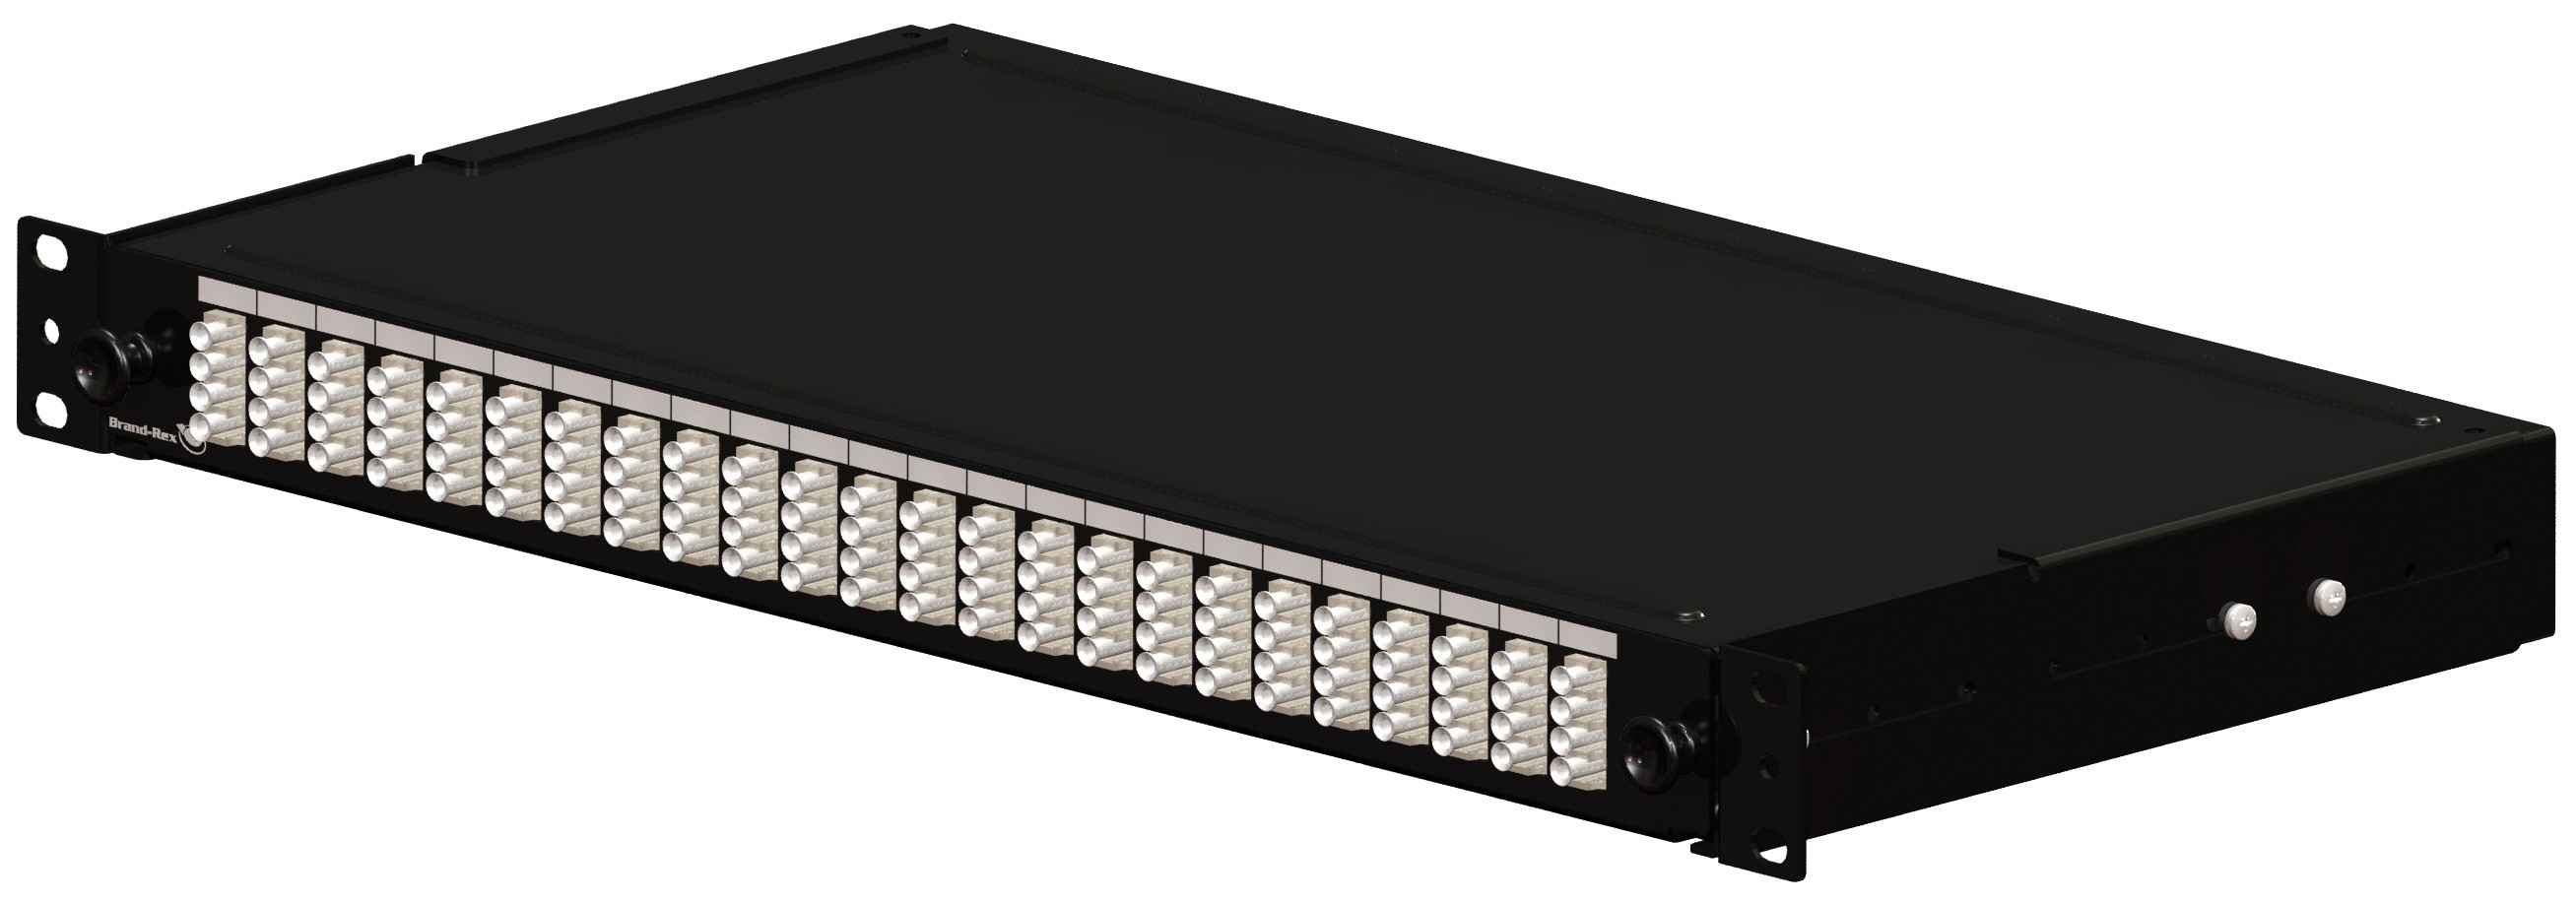 Brand-Rex Optical Panel loaded with 12 ST Multimode adapters